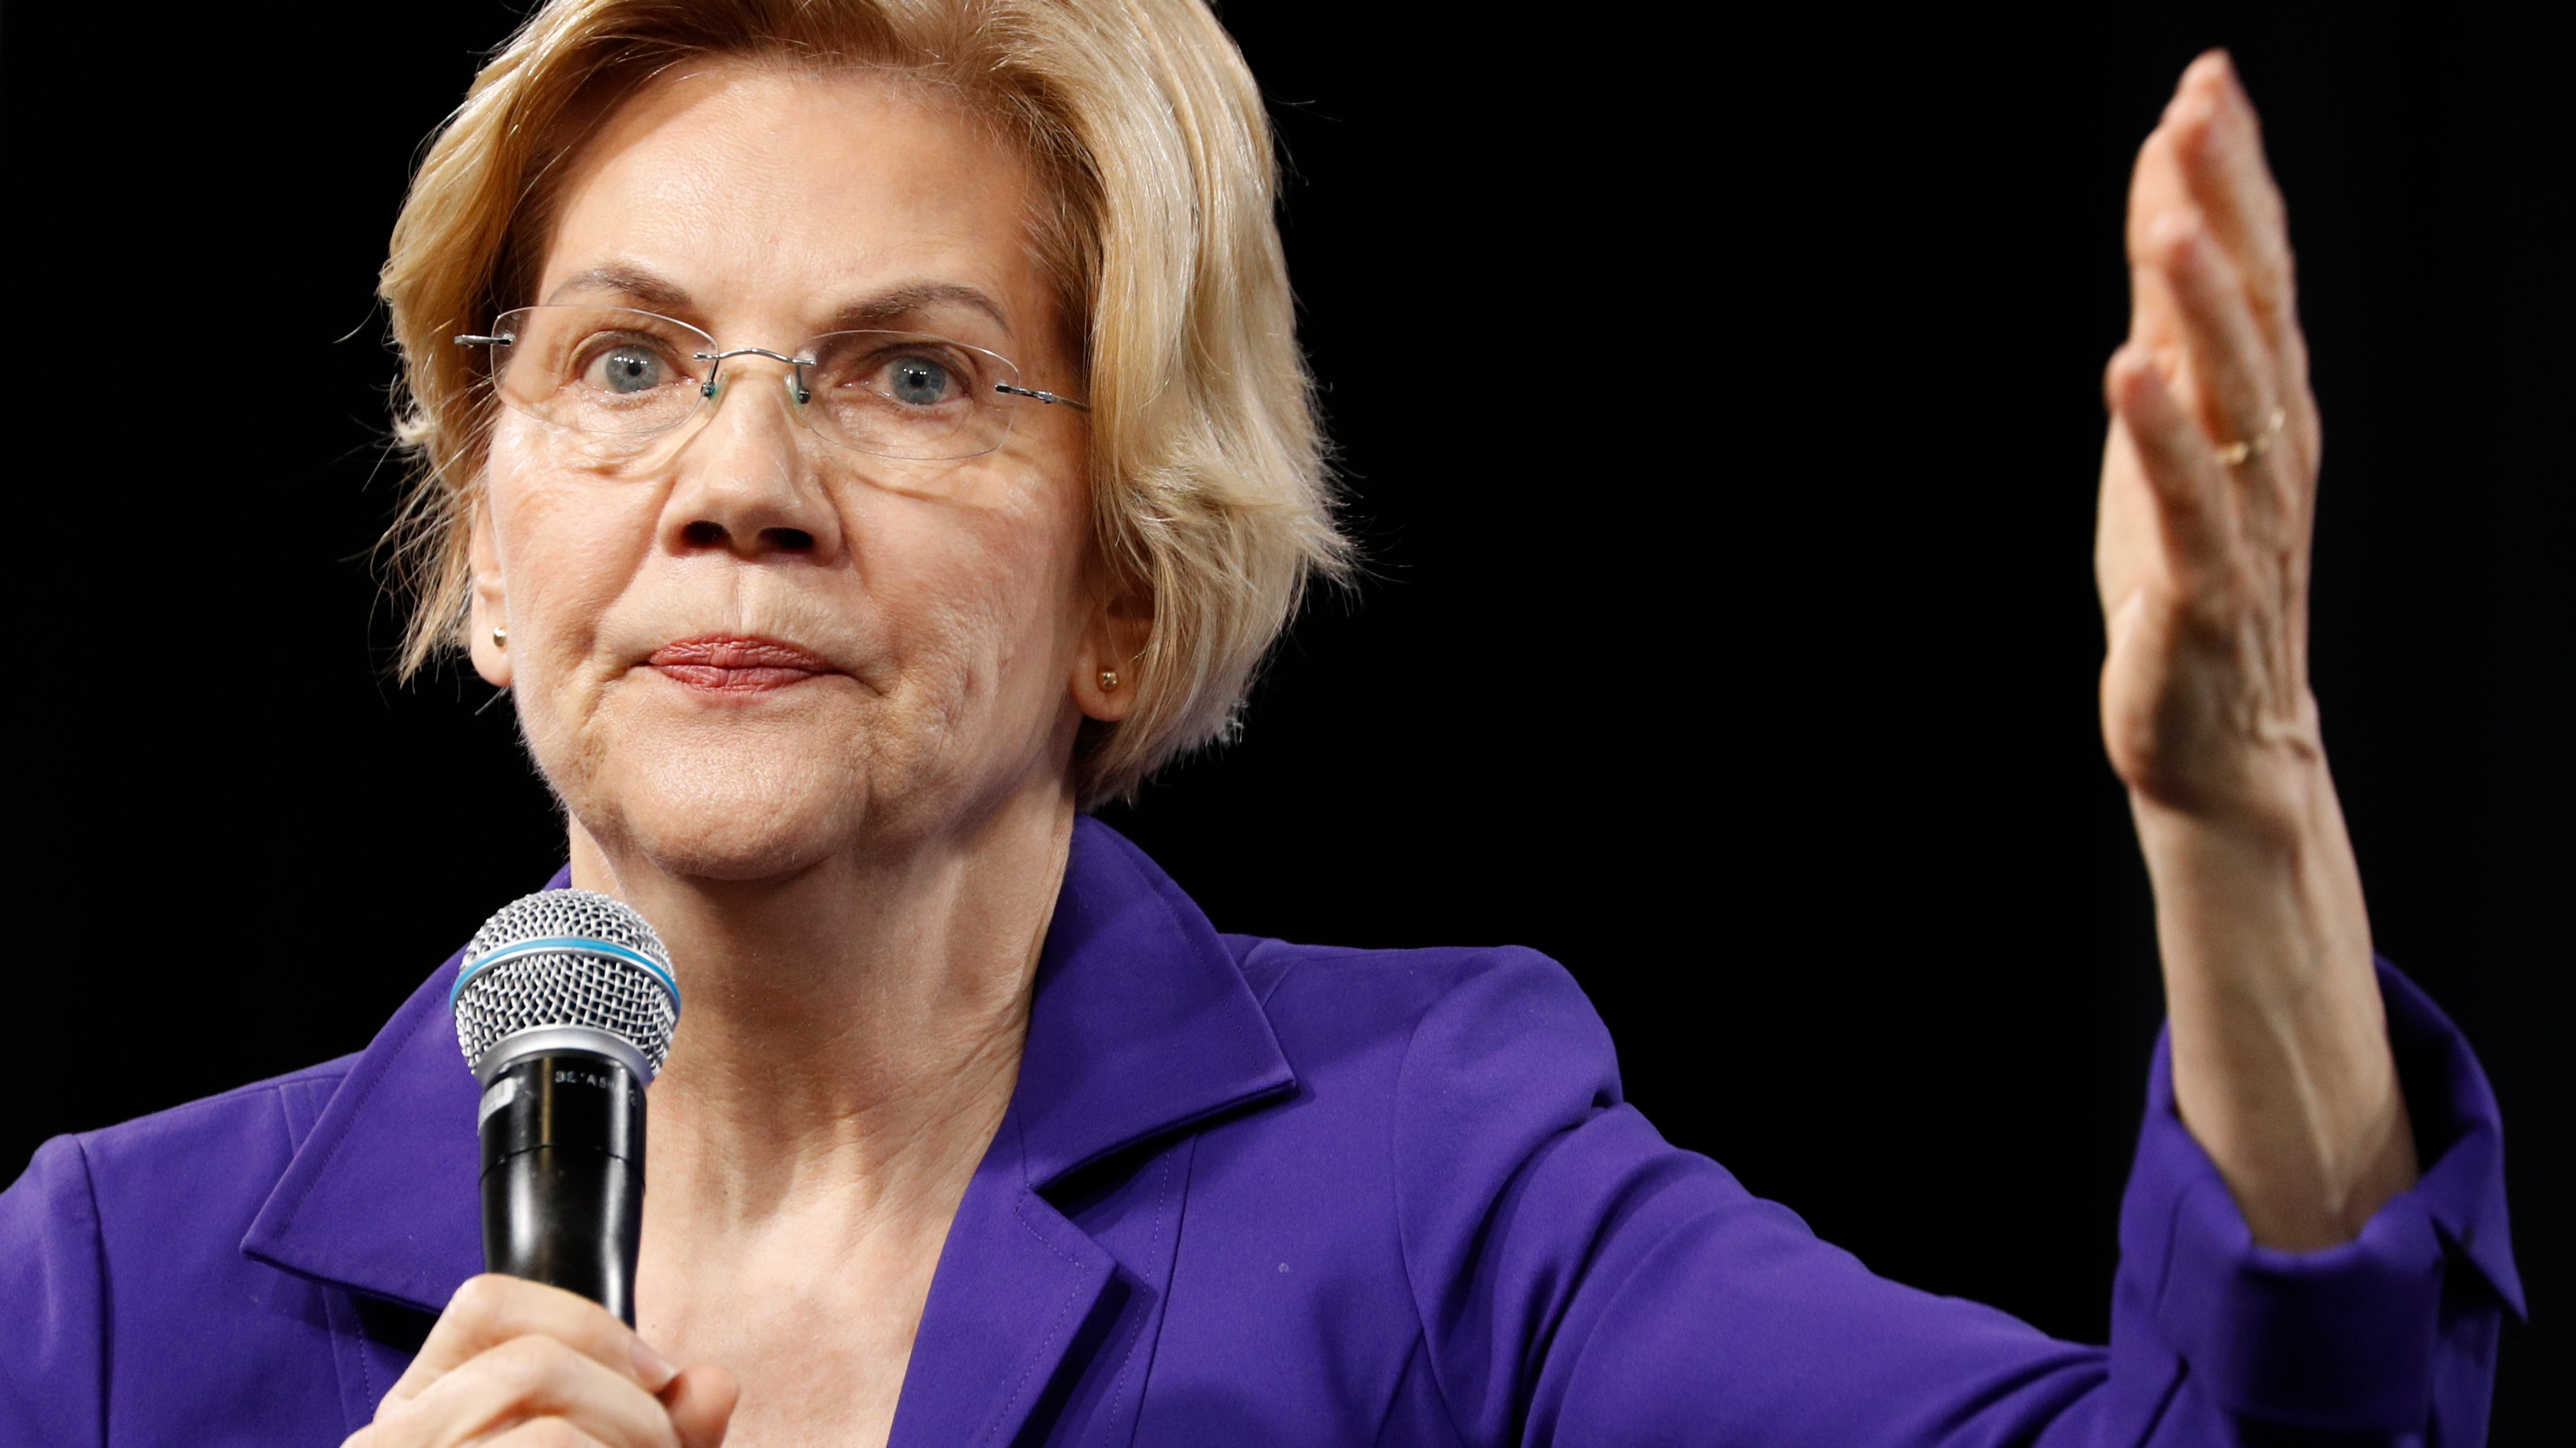 Chase doesn't get why customers aren't saving money. Elizabeth Warren has an answer.